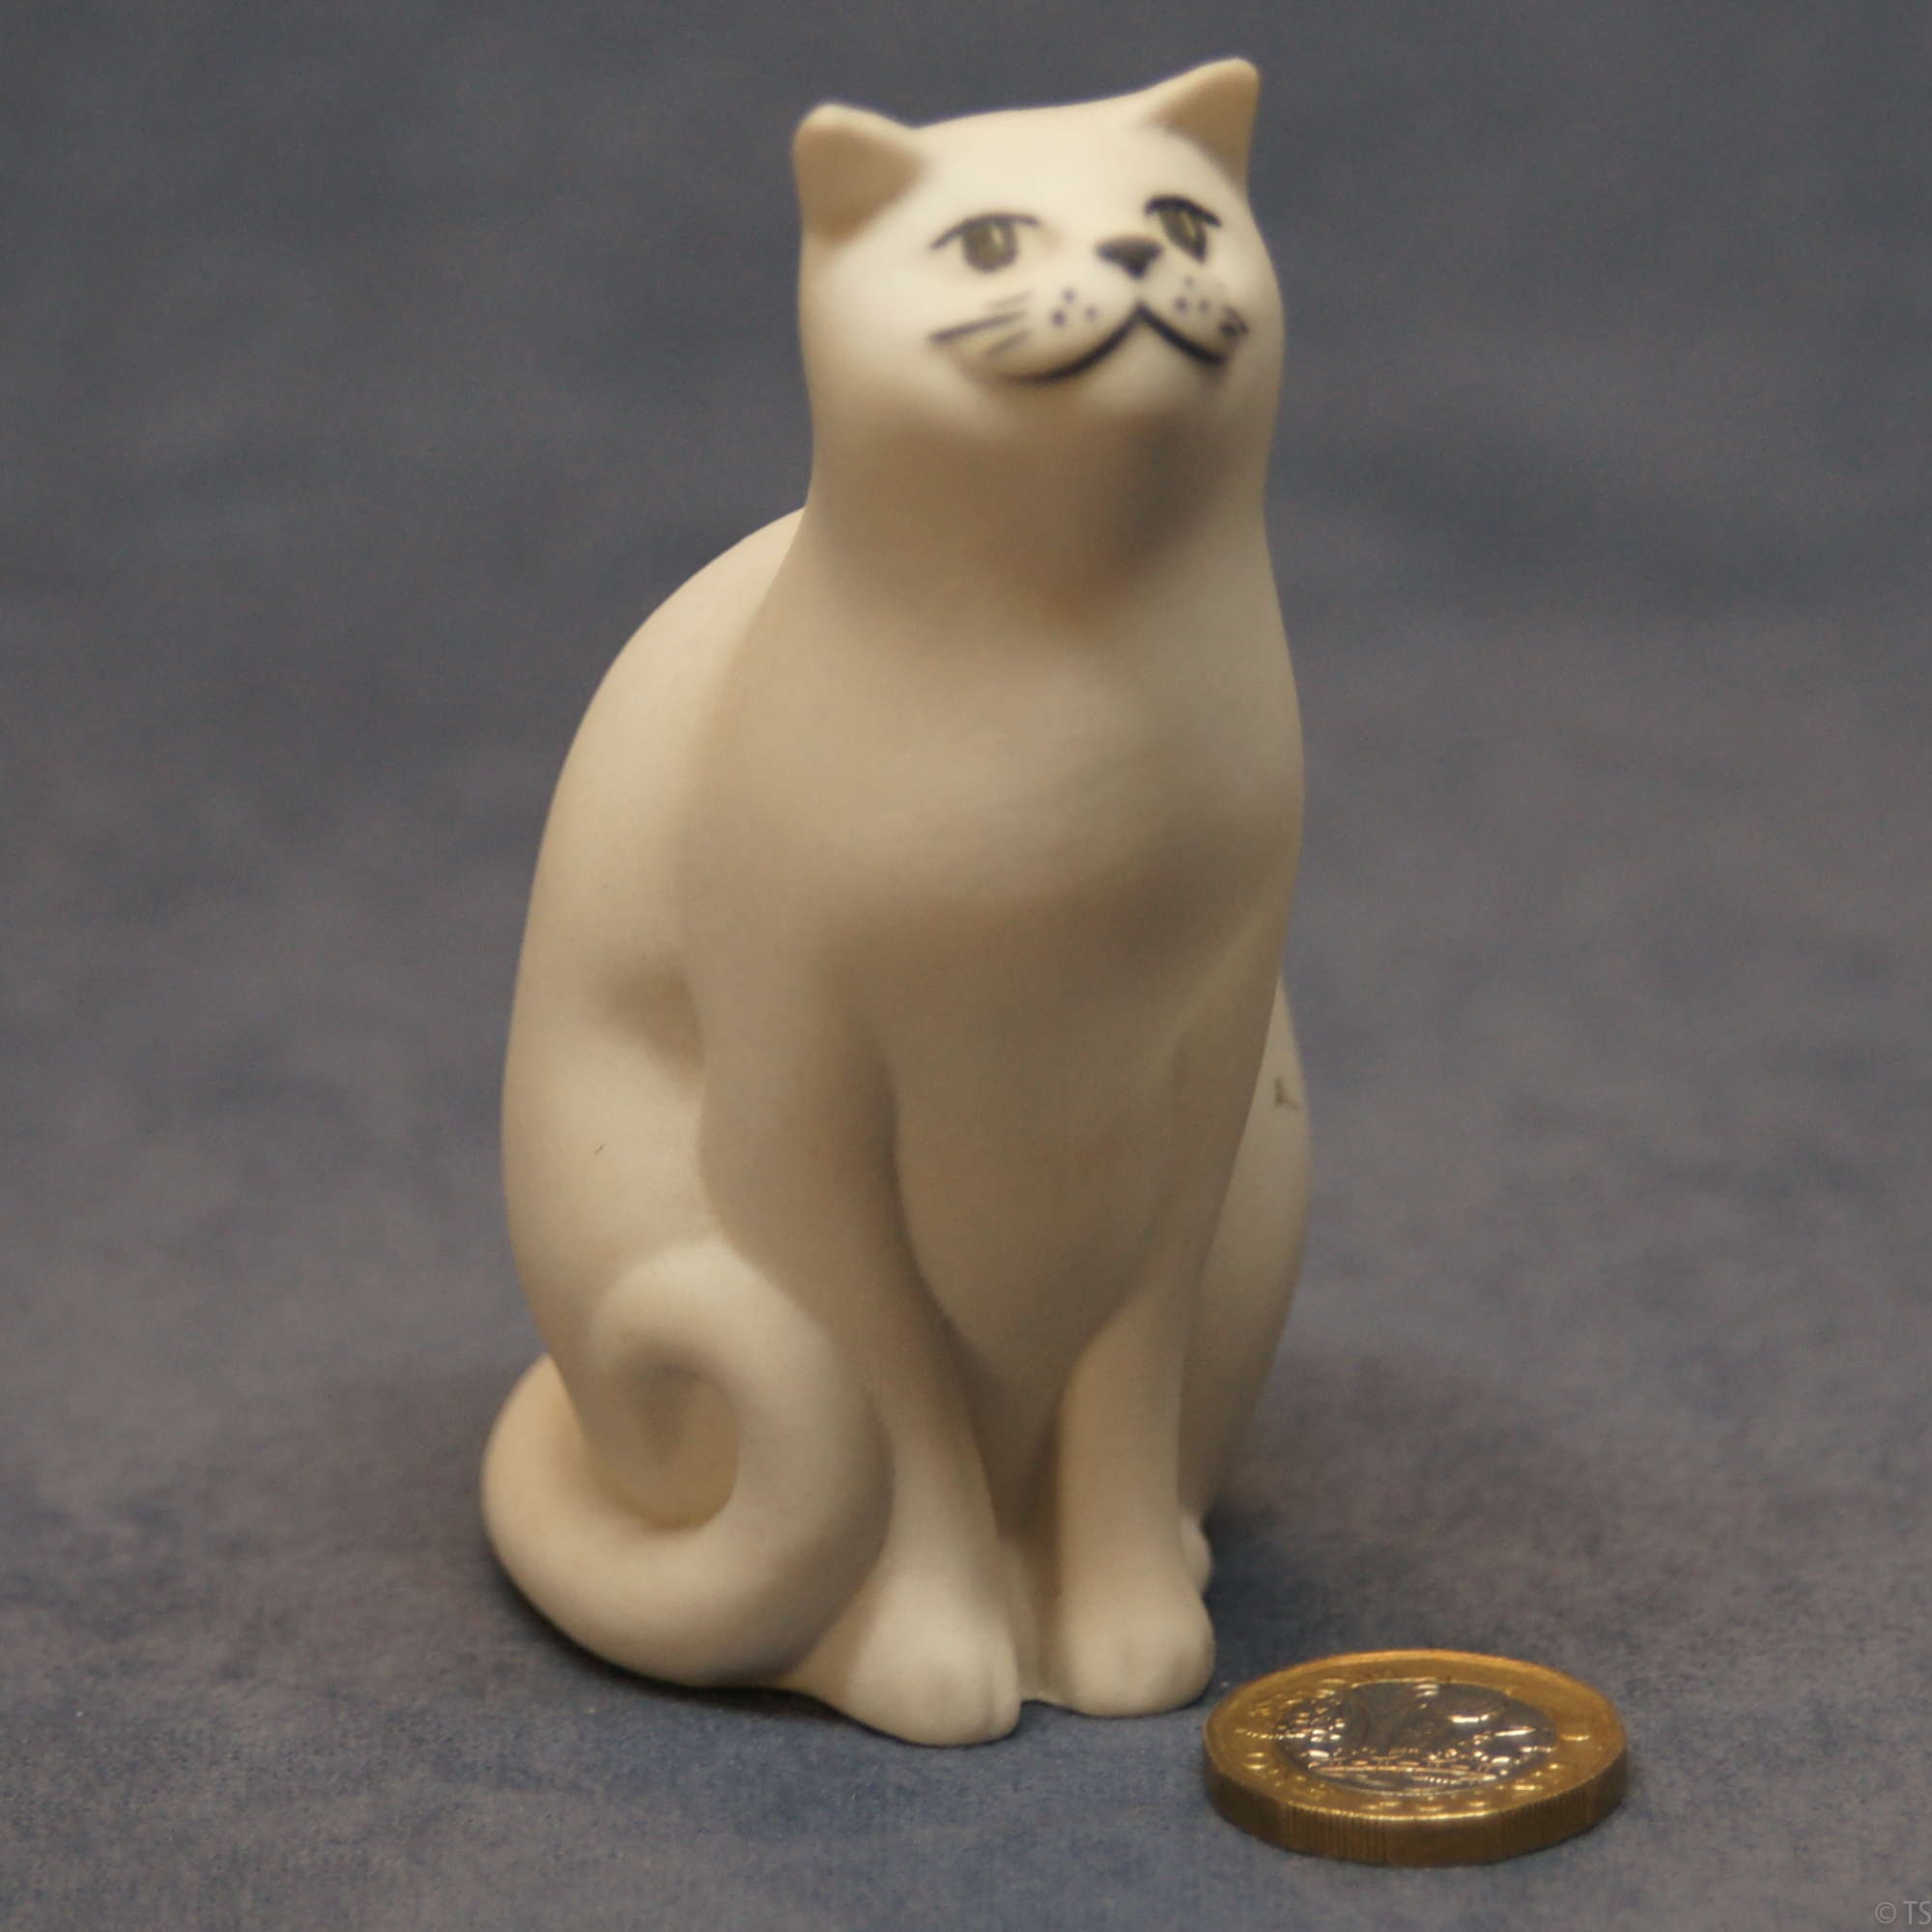 S003 - White Tom Cat